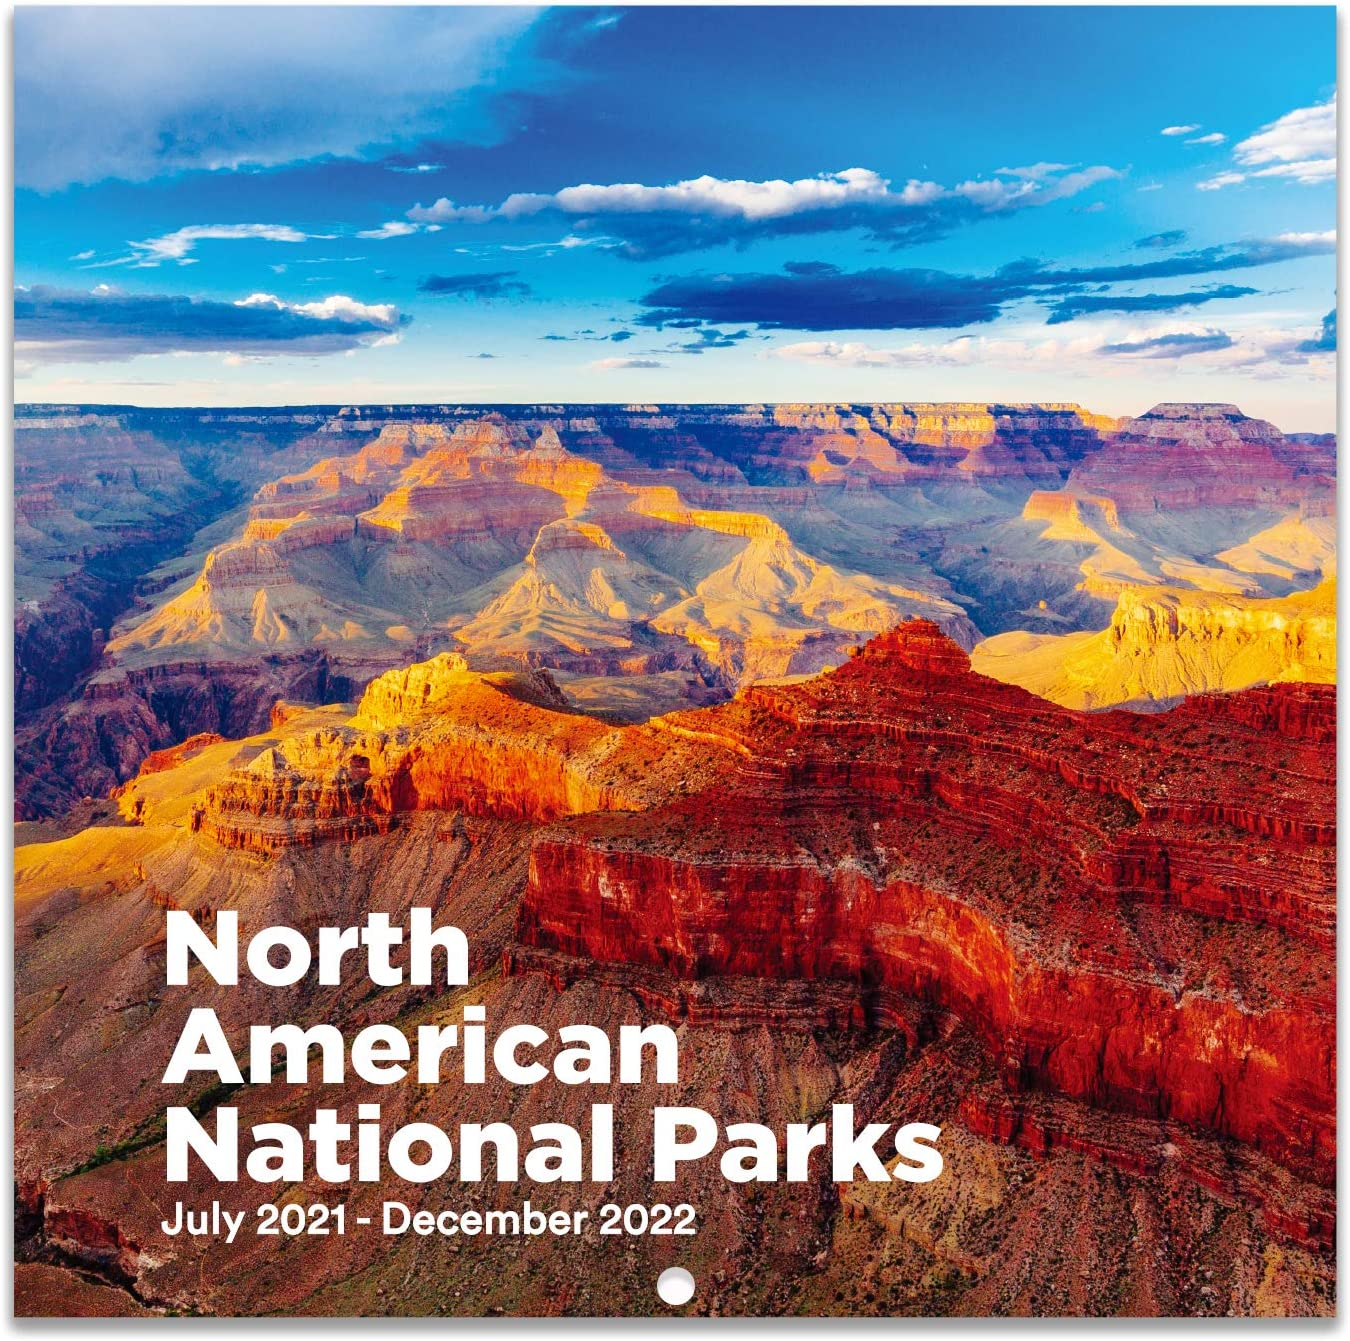 Us Shopping Sales Calendar 2022.Amazon Com 2021 2022 Wall Calendar Monthly Wall Calendar 2021 2022 Jul 2021 Dec 2022 12 X 24 Open Wall Calendar With Julian Date Perfect Calendar For Organizing Planning National Parks Office Products